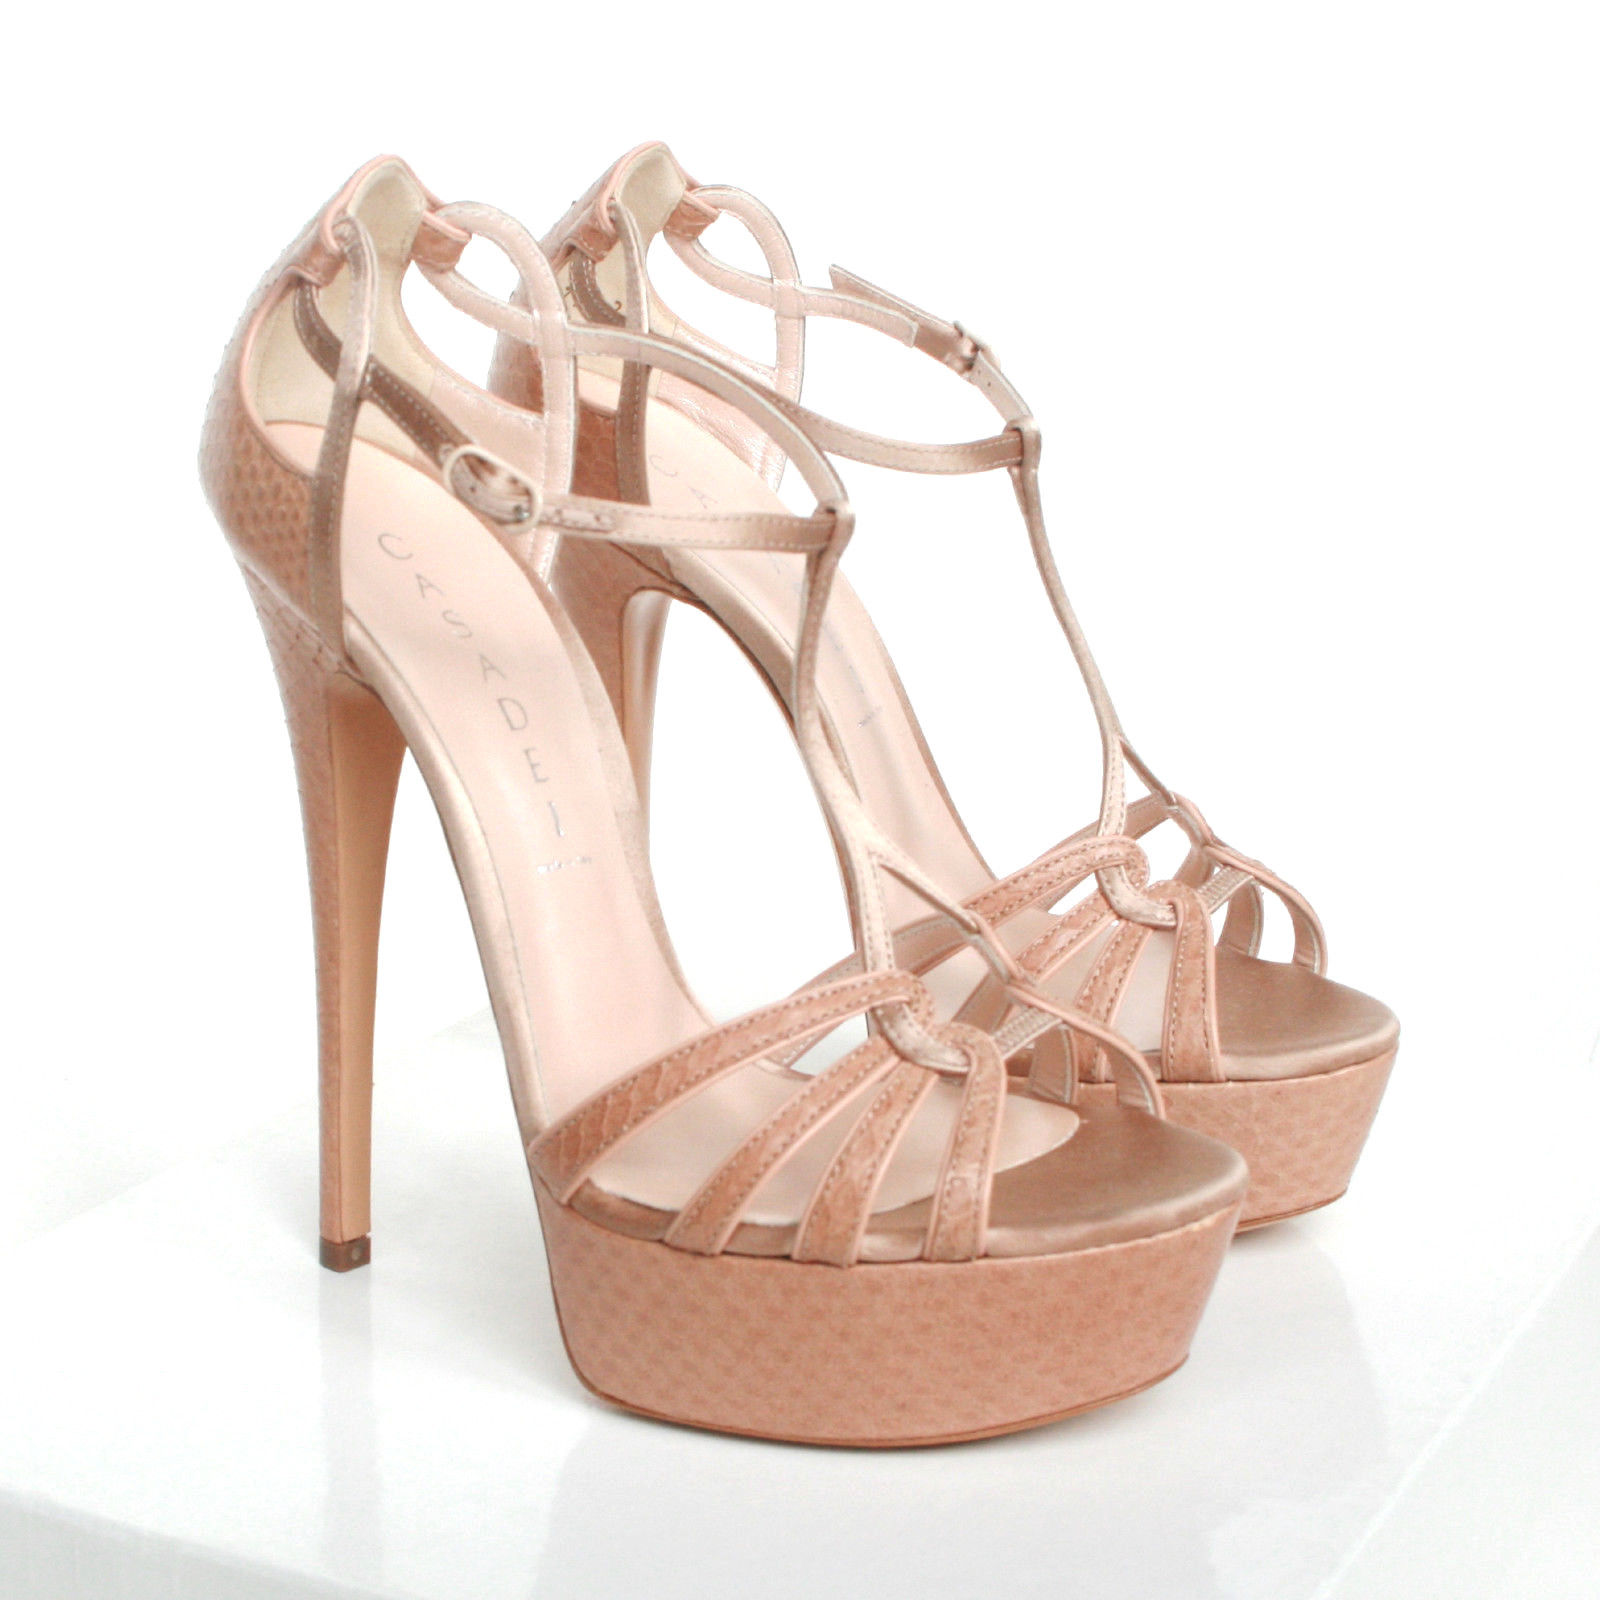 http://stores.ebay.com/The-Couture-Auction-Co